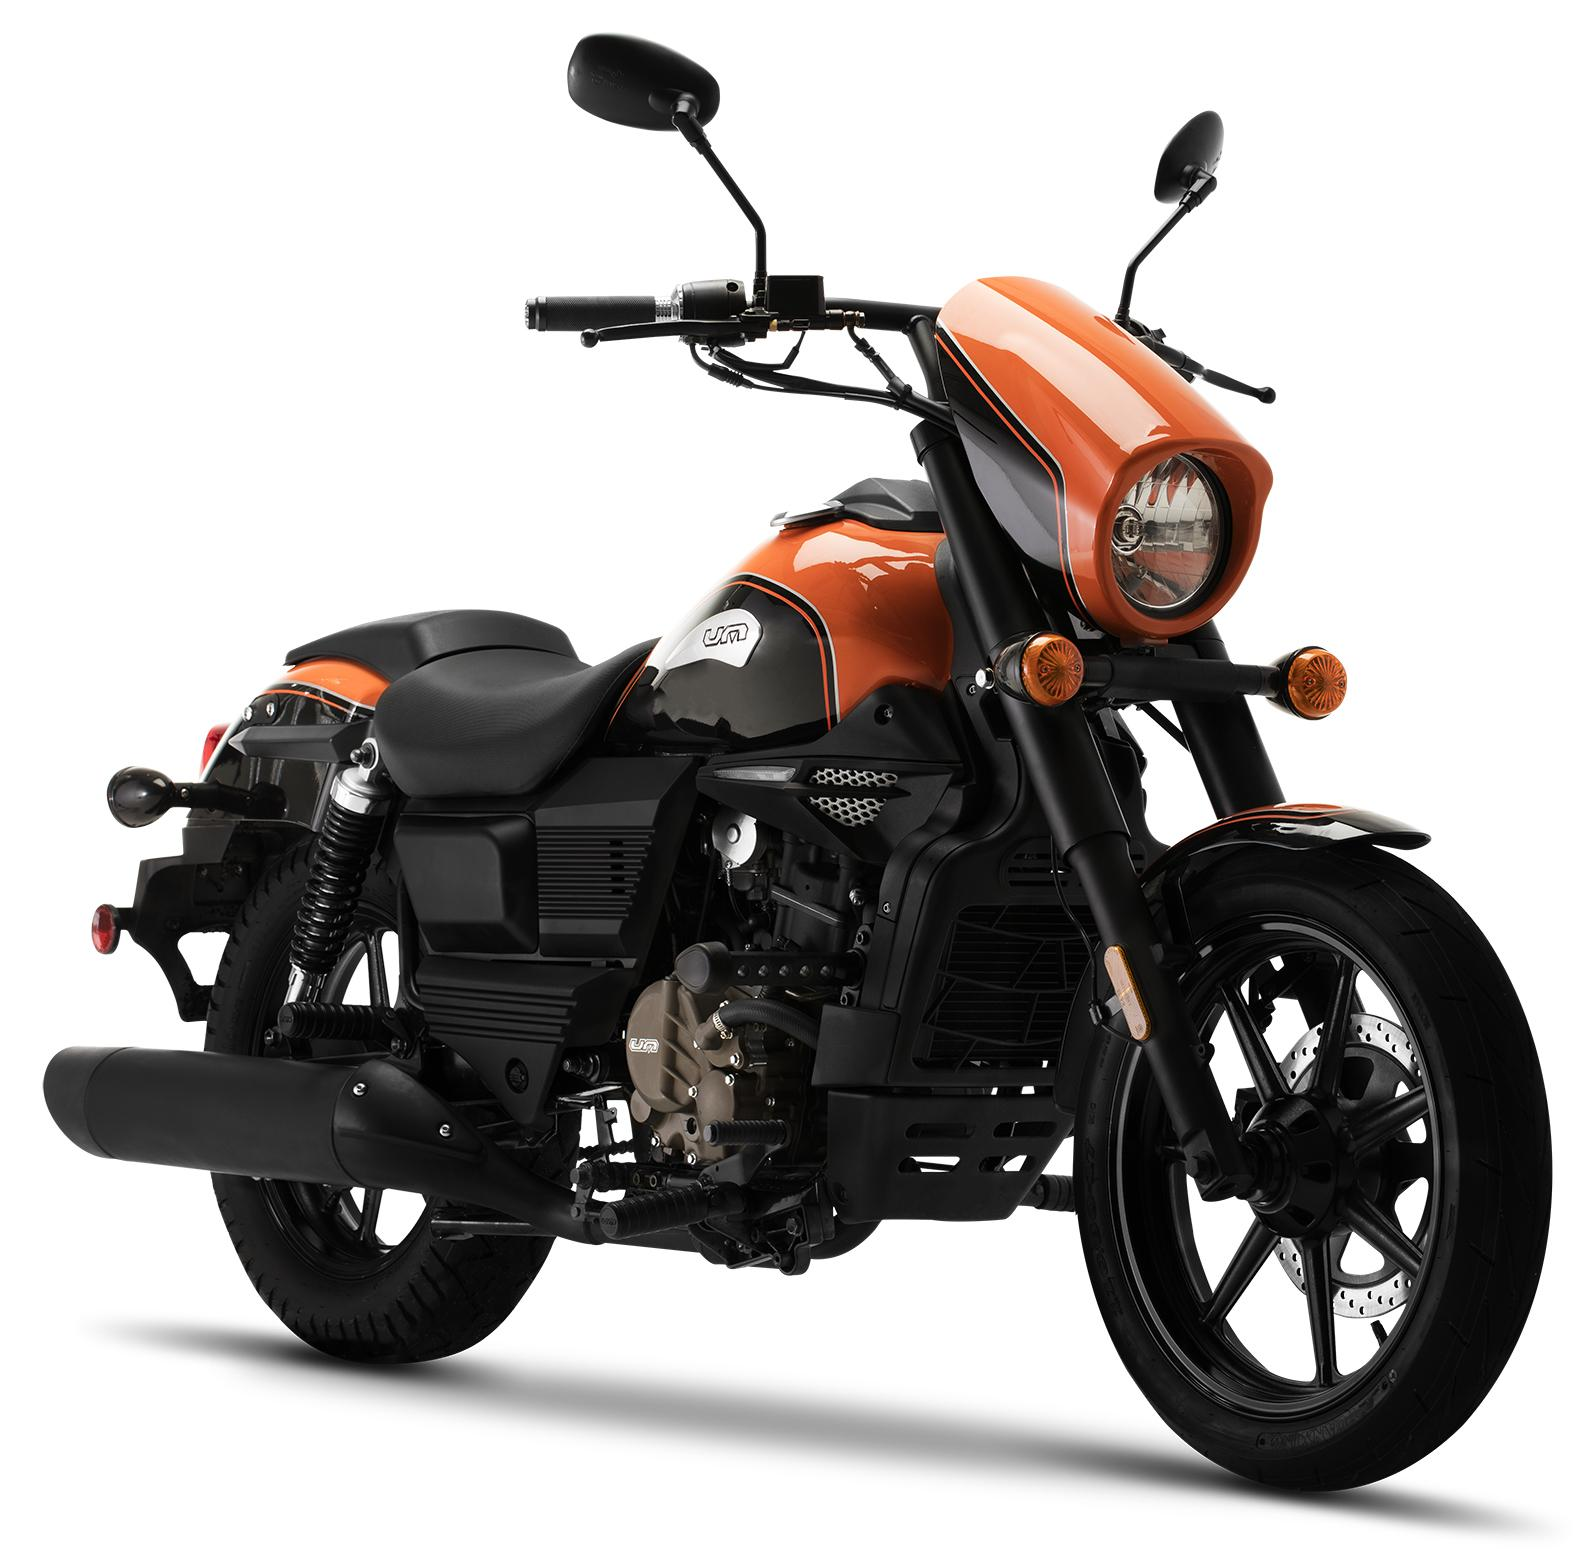 Cruiser Bikes For Sale Cruiser Motorcycles Online Brands Prices